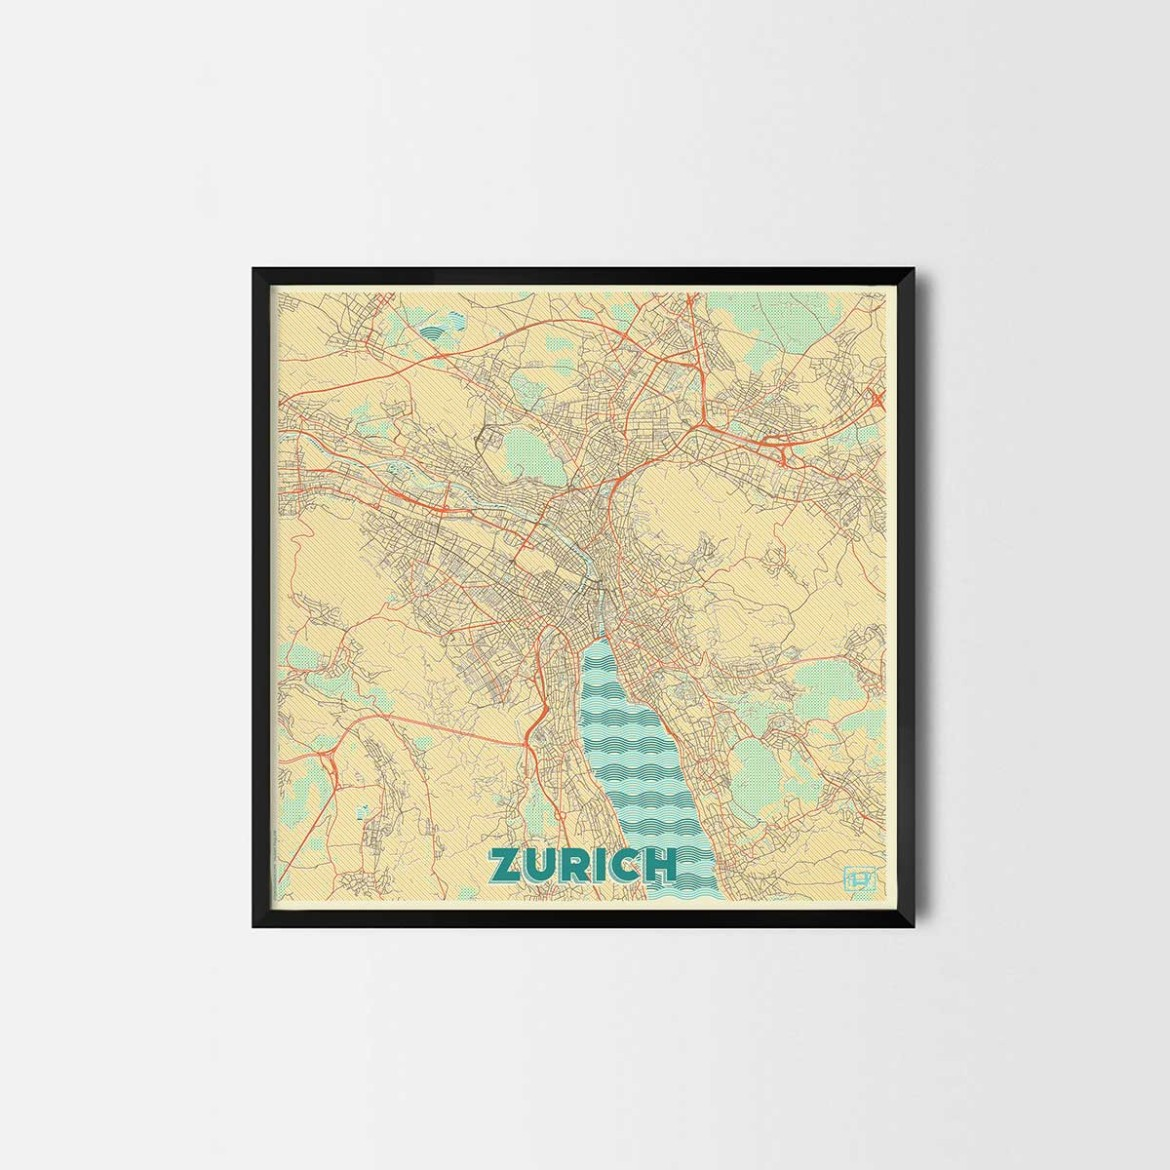 Zurich gift map art prints and posters home decor gifts for Home decor zurich